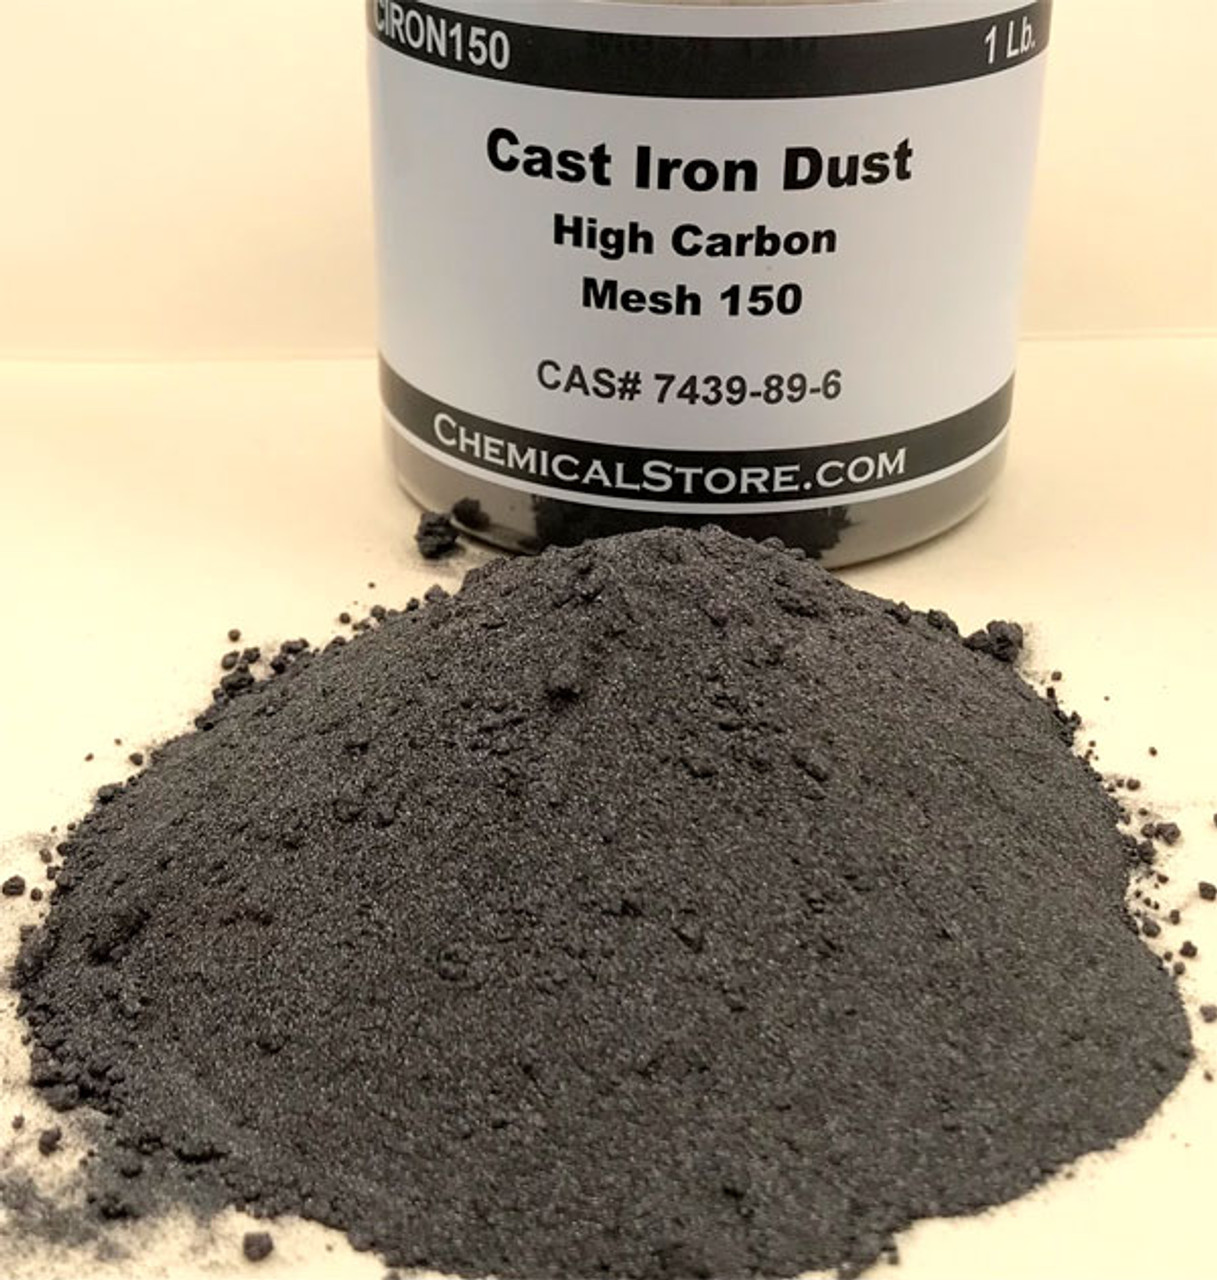 Cast Iron Dust, blend with graphite